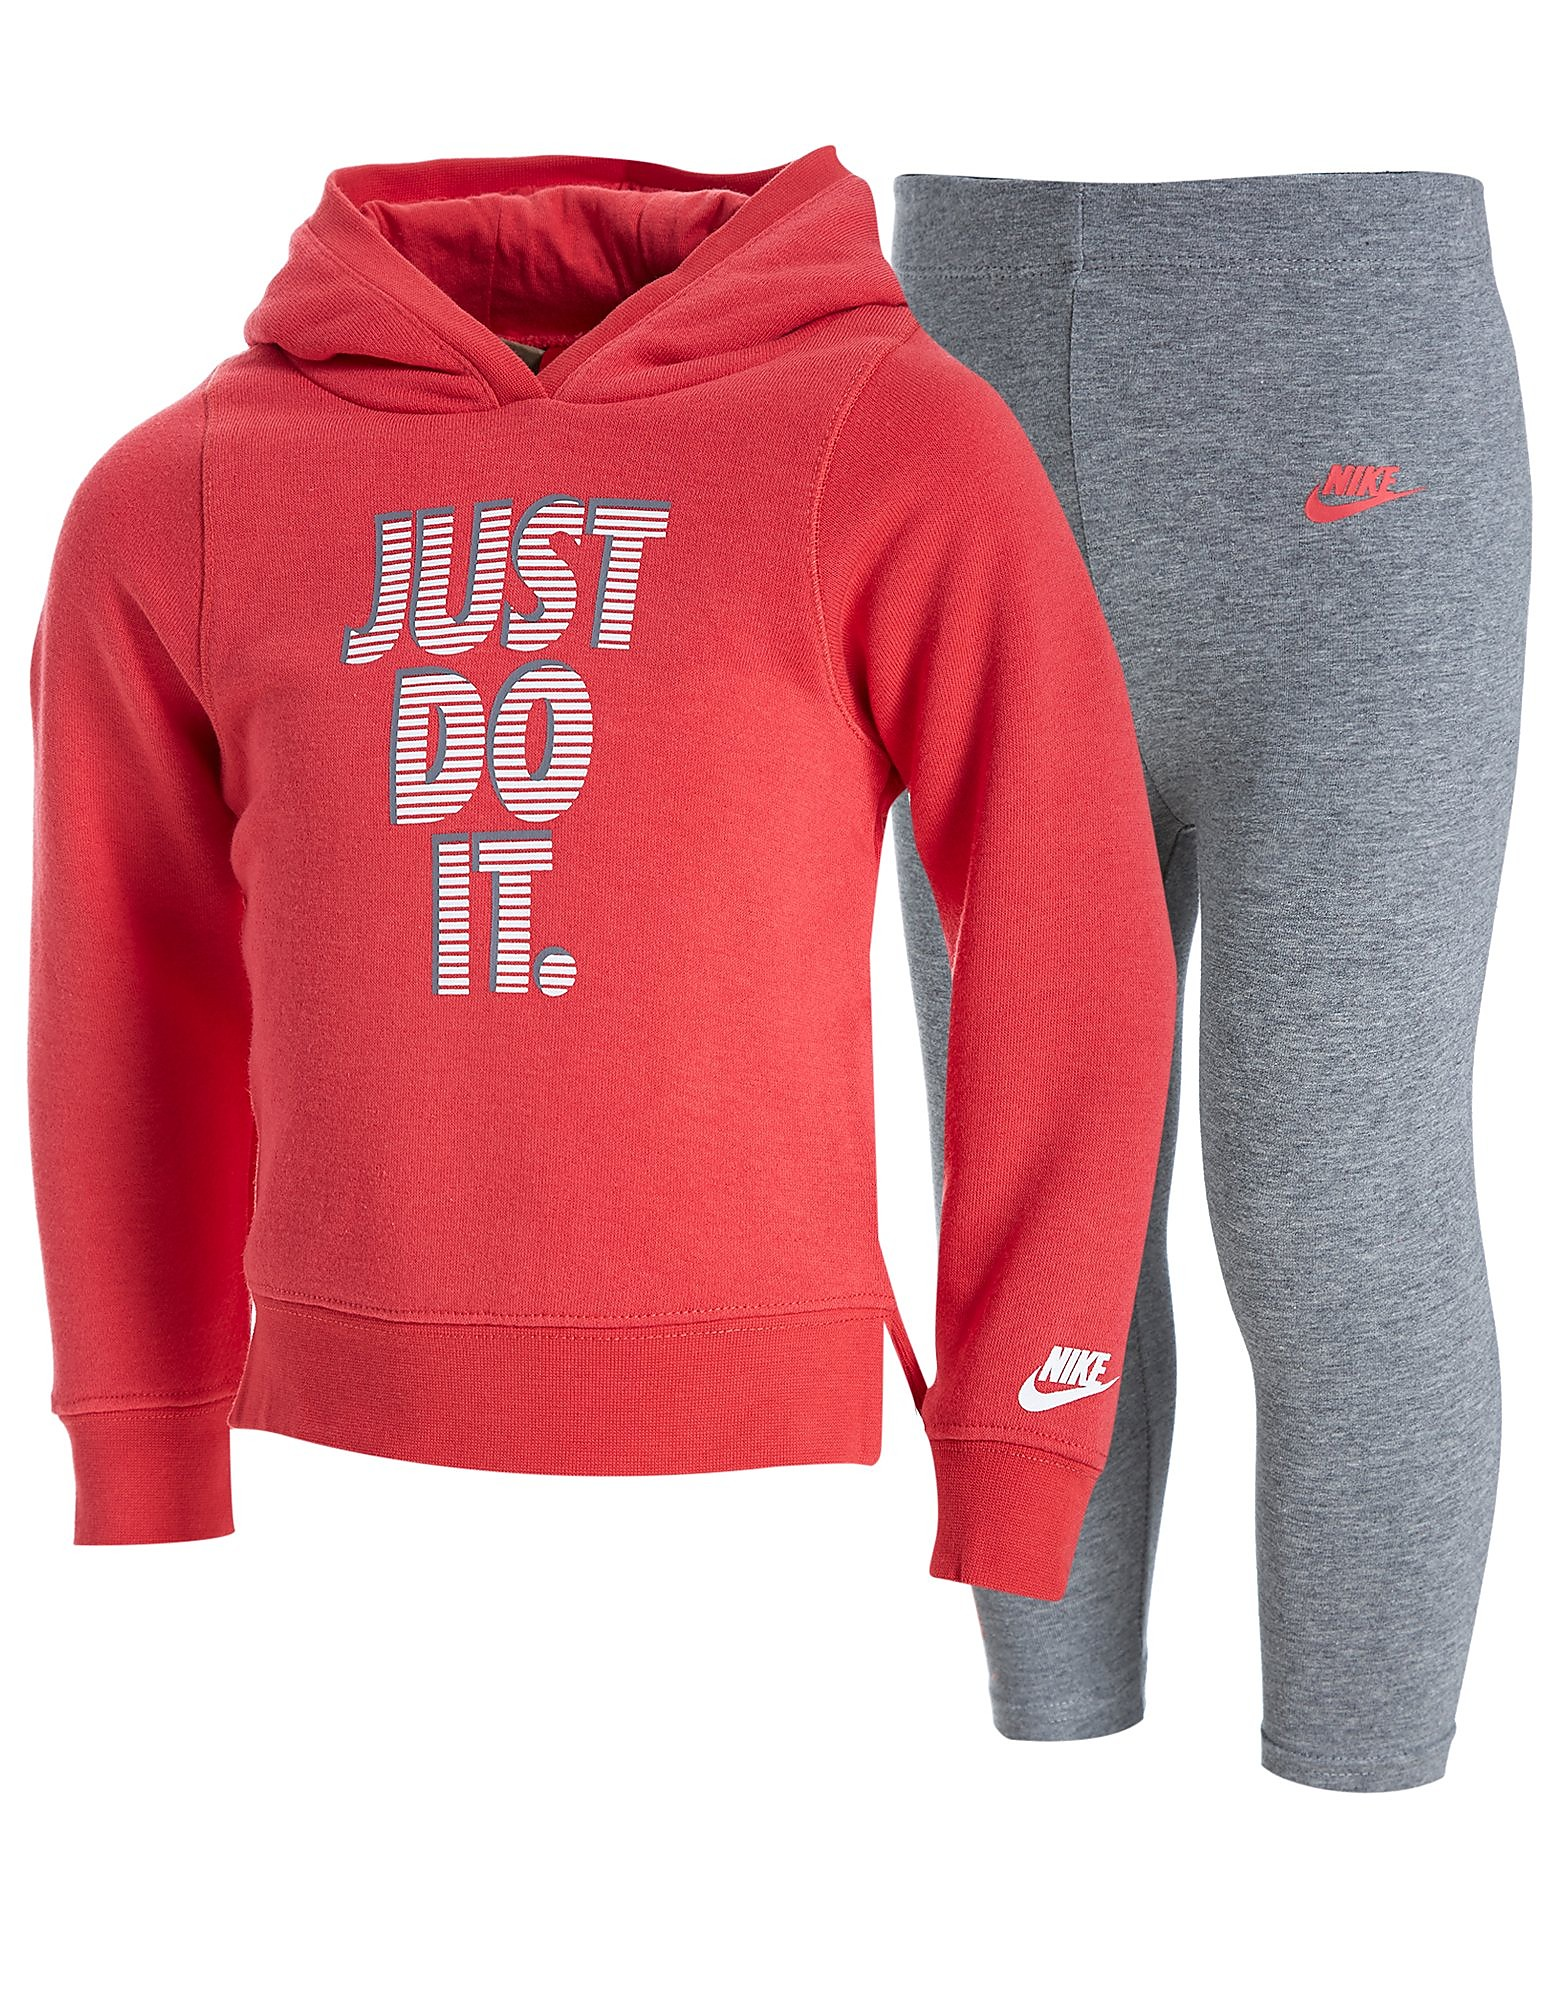 Nike Girls Just Do It Felpa/Leggings Completo Bebè